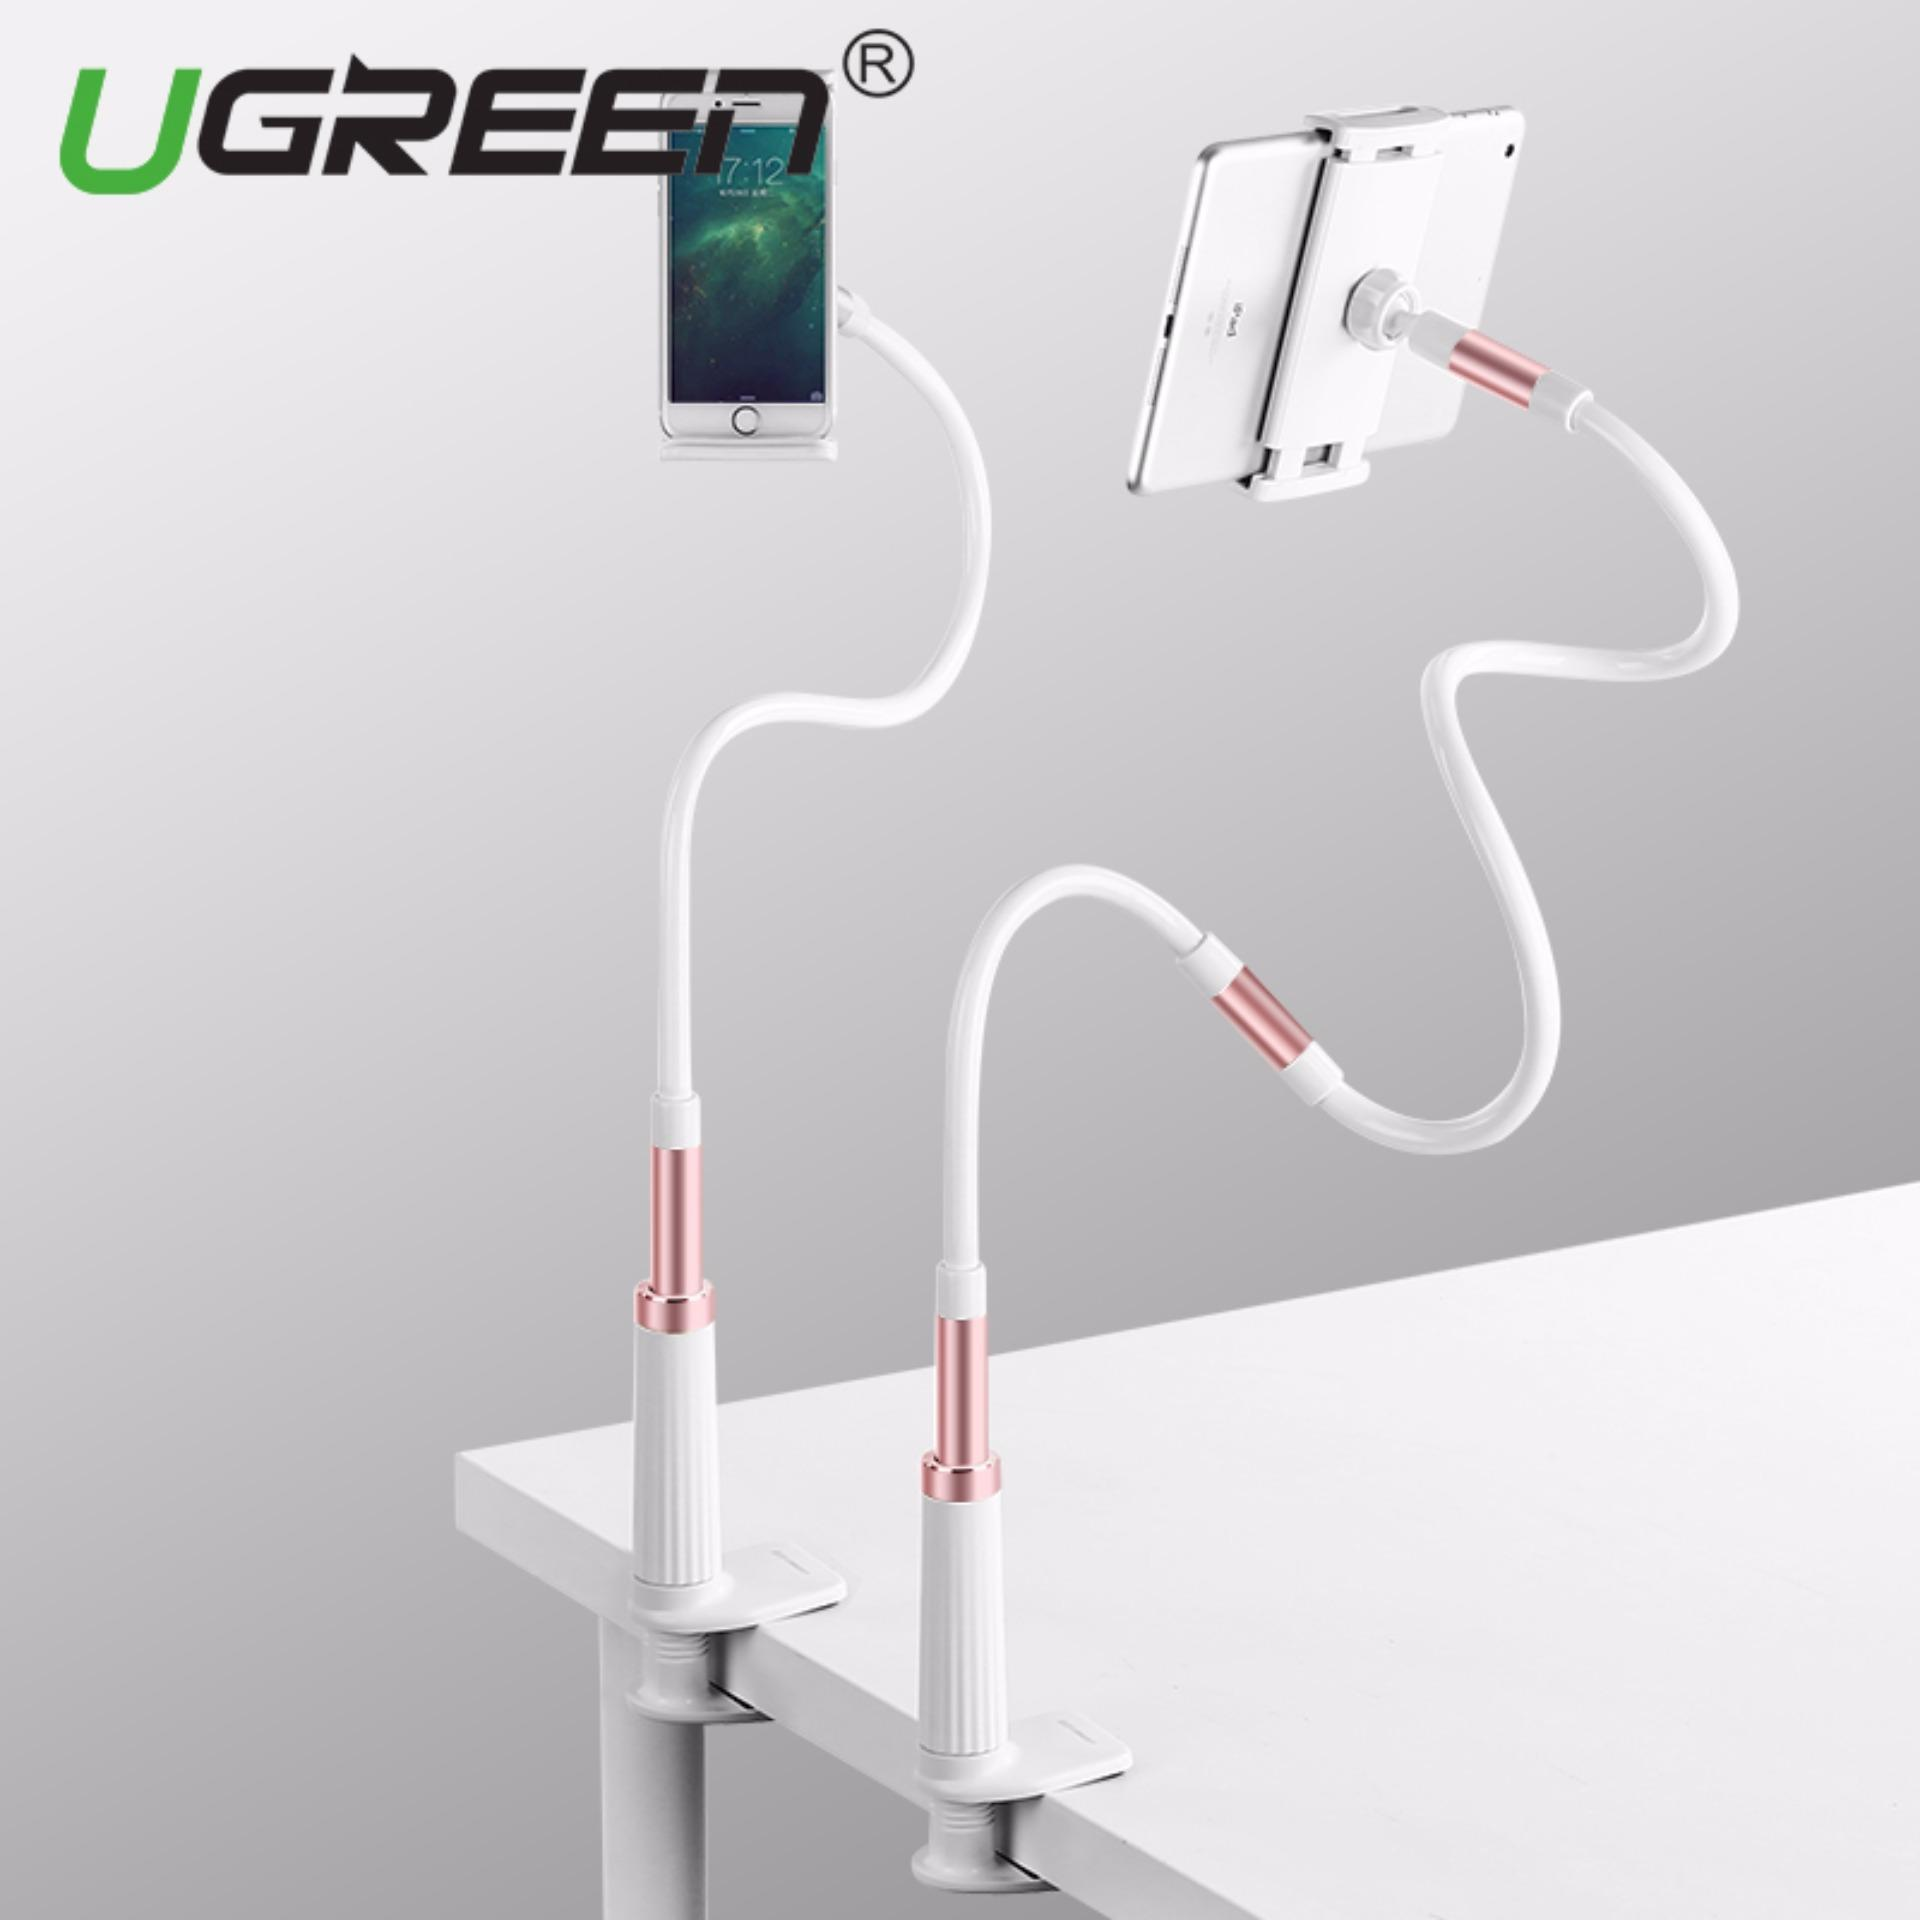 UGREEN Gooseneck Cell Phone Clip Long Arm Holder Clamp Mount for iPhone X, iPhone 8, 7 Plus, iPhone 6S, 6 Plus, Small Tablet for Bed, Kitchen and Office (Rose Gold)-Intl product preview, discount at cheapest price